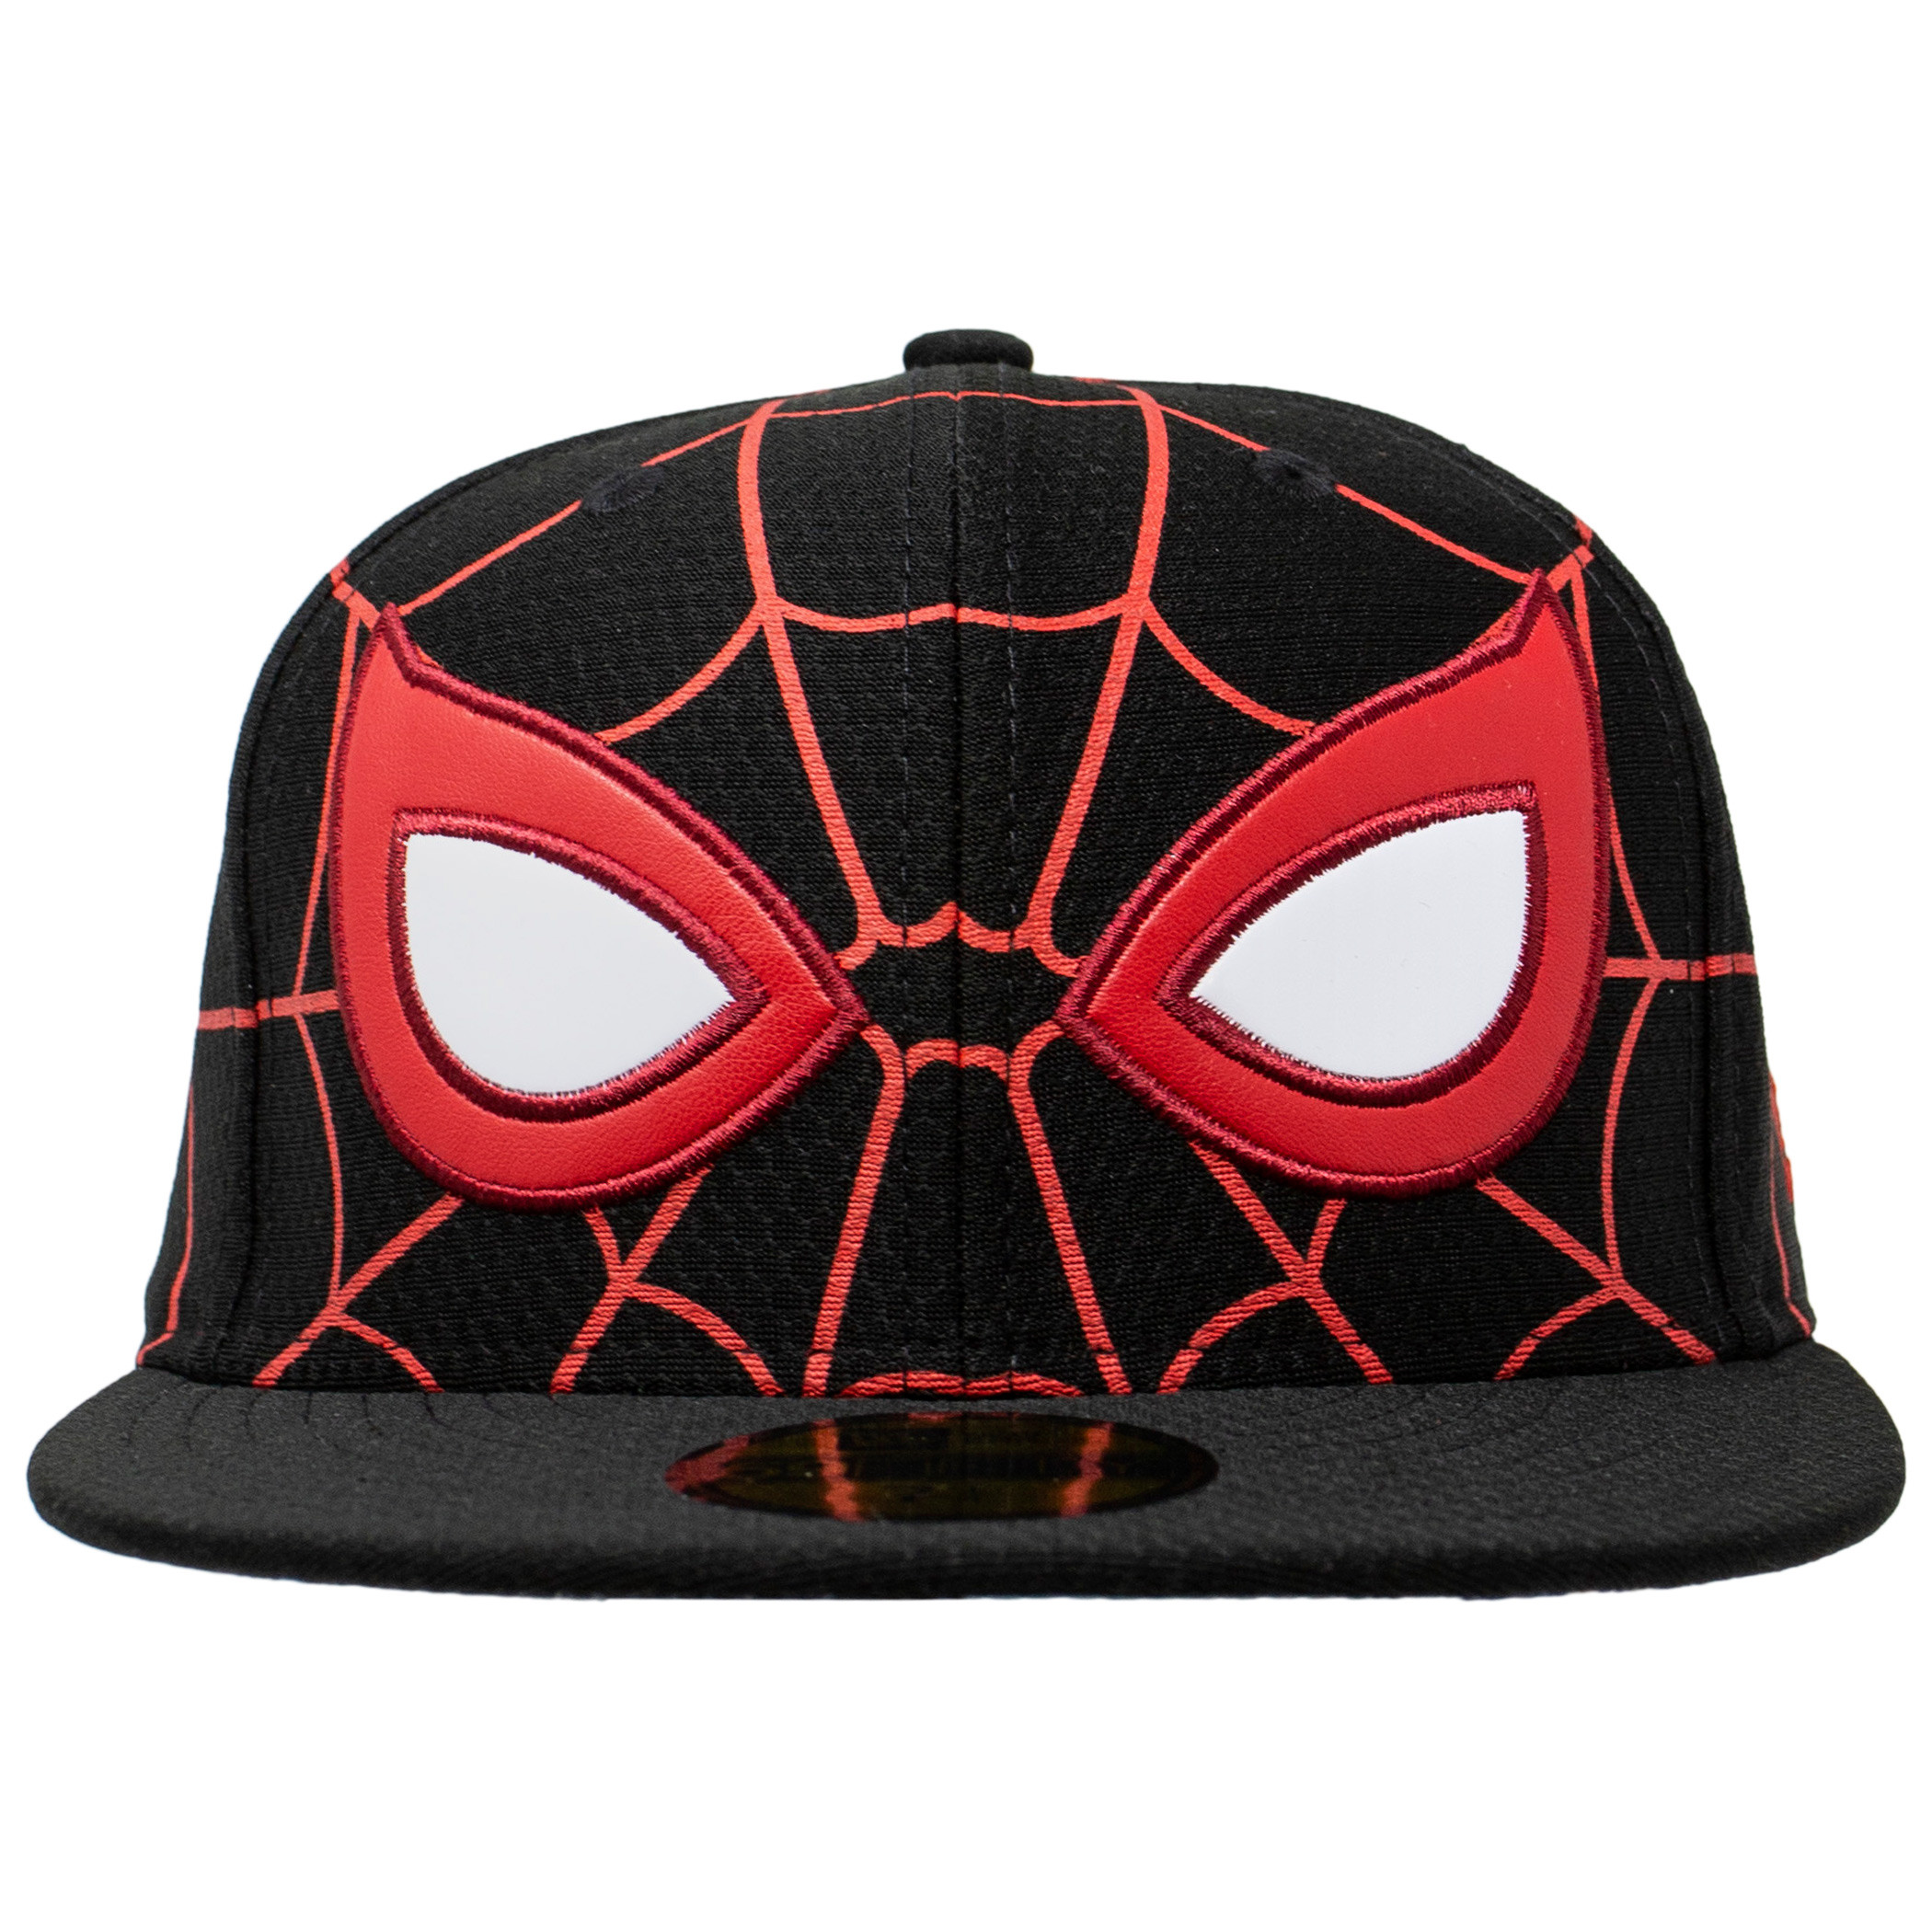 Miles Morales Spider-Man New Era 59Fifty Hat